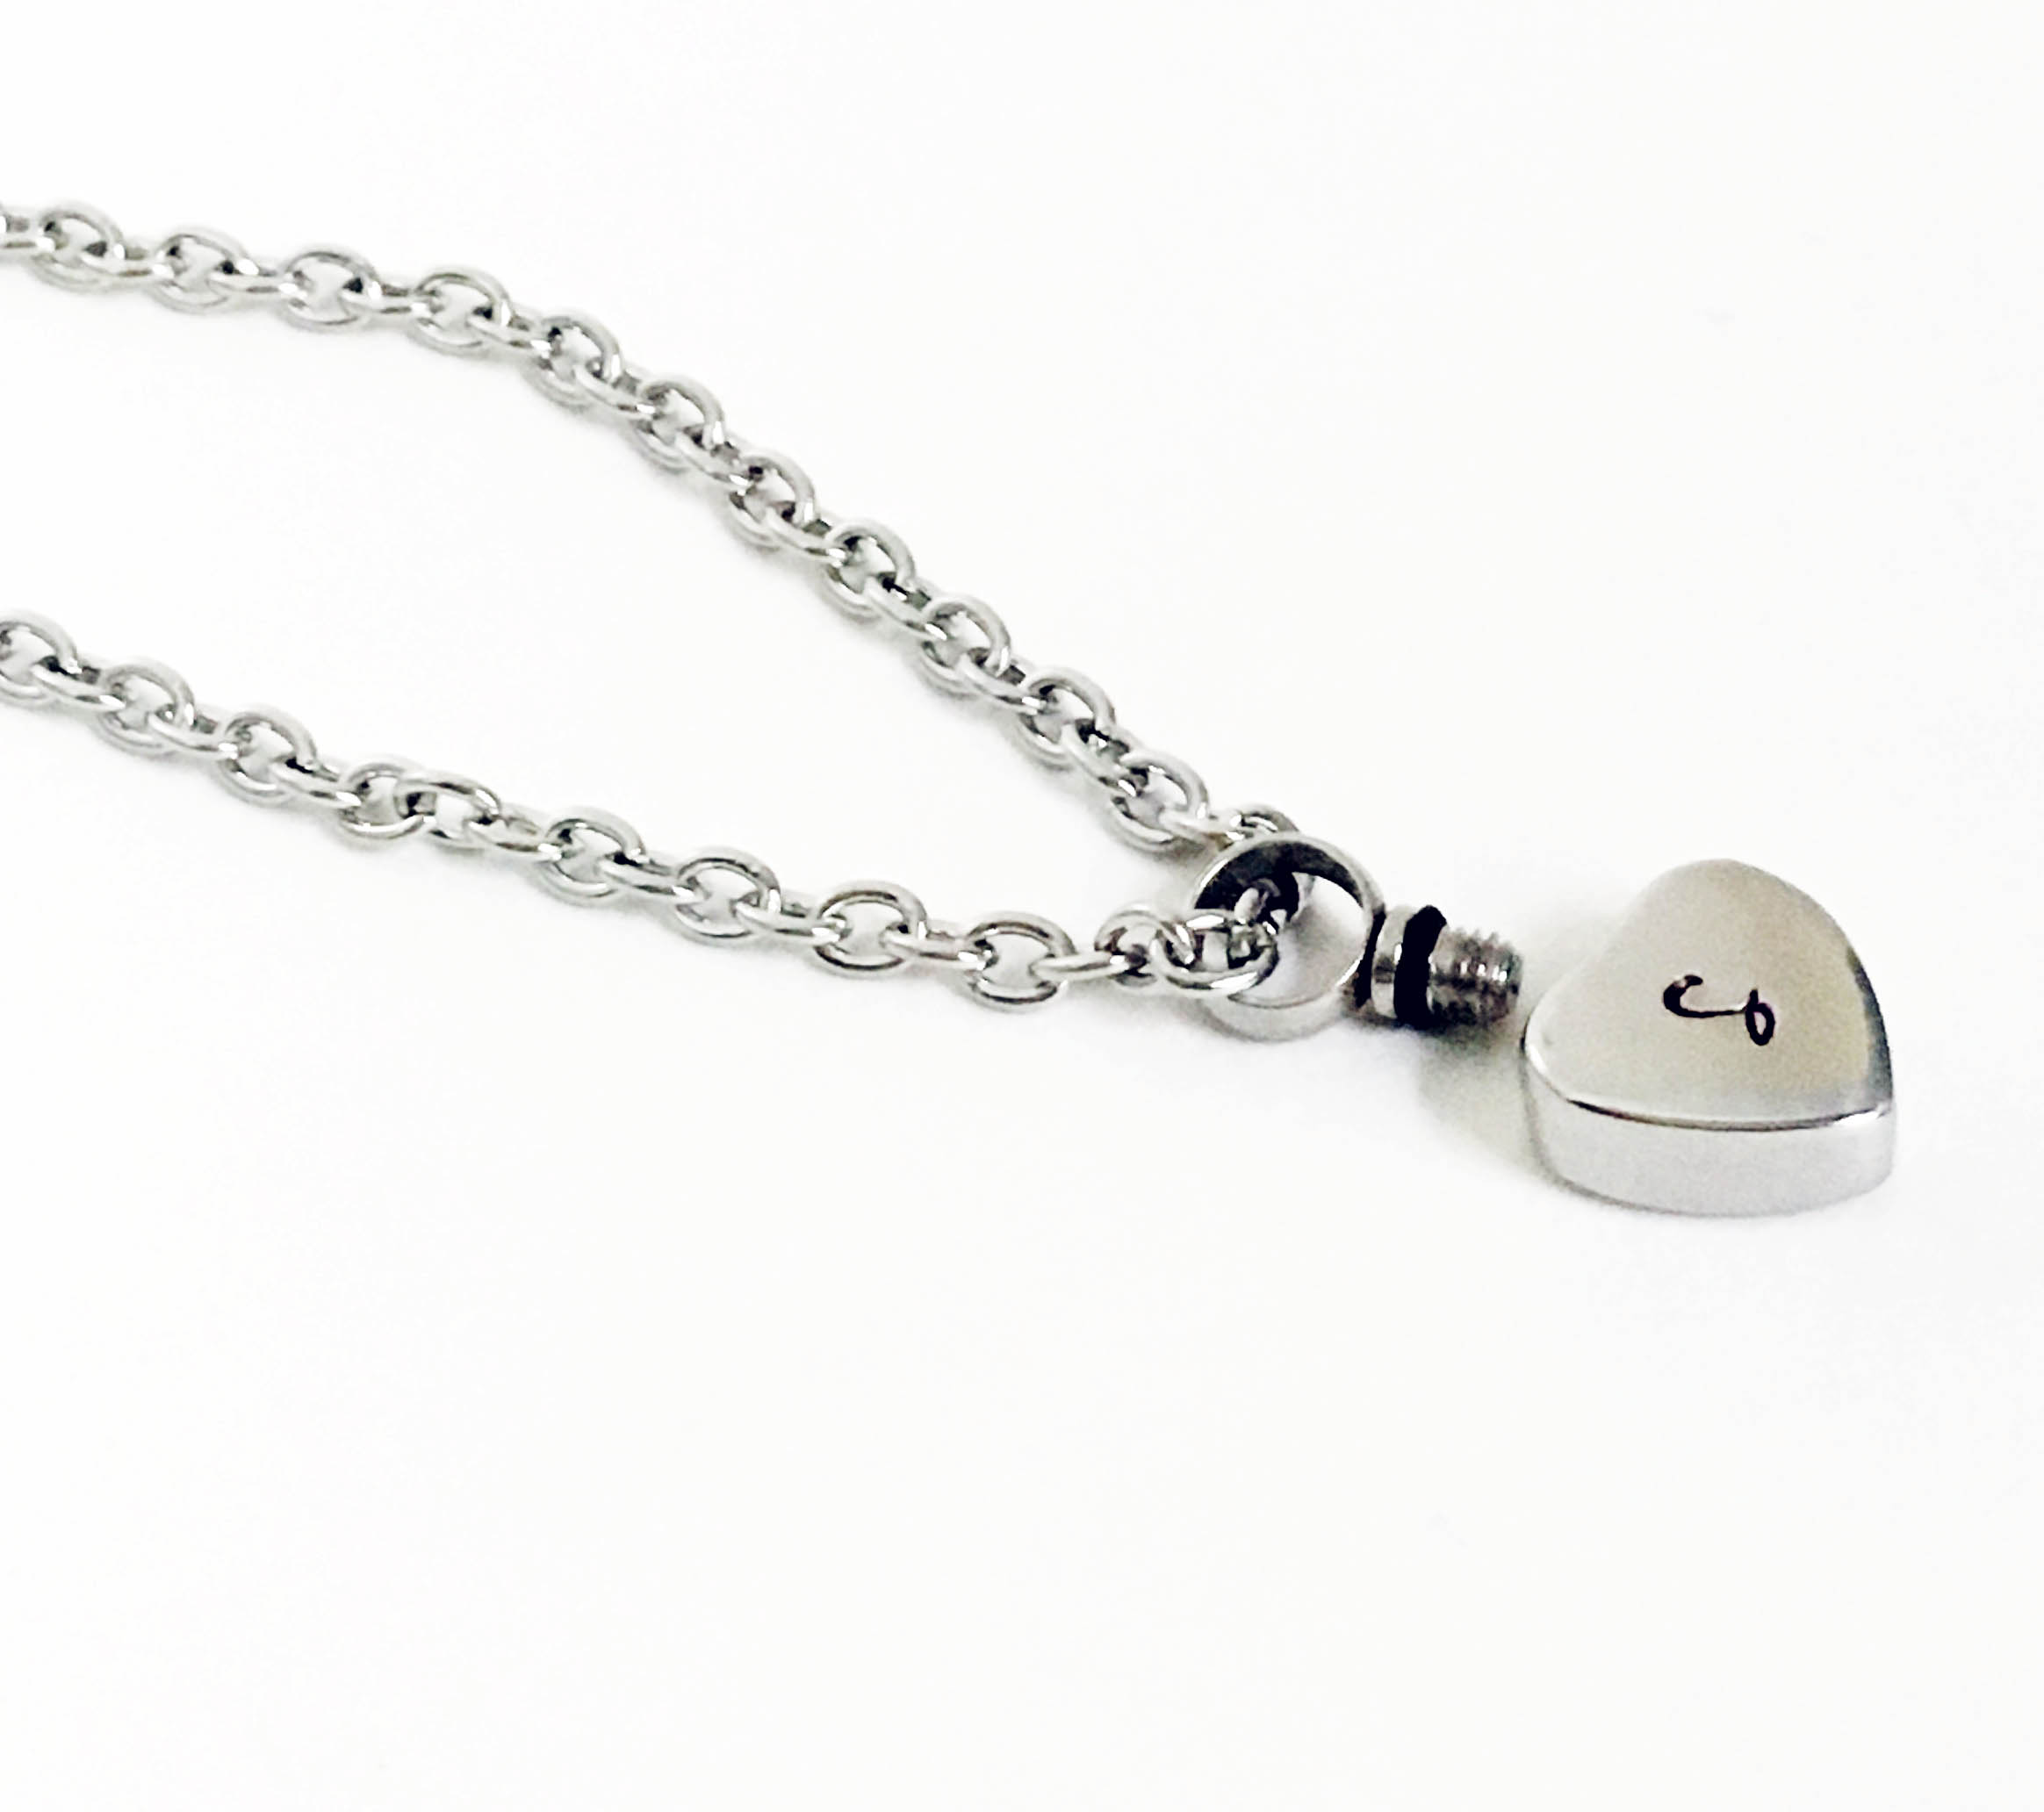 Personalized Cremation Memorial Jewelry